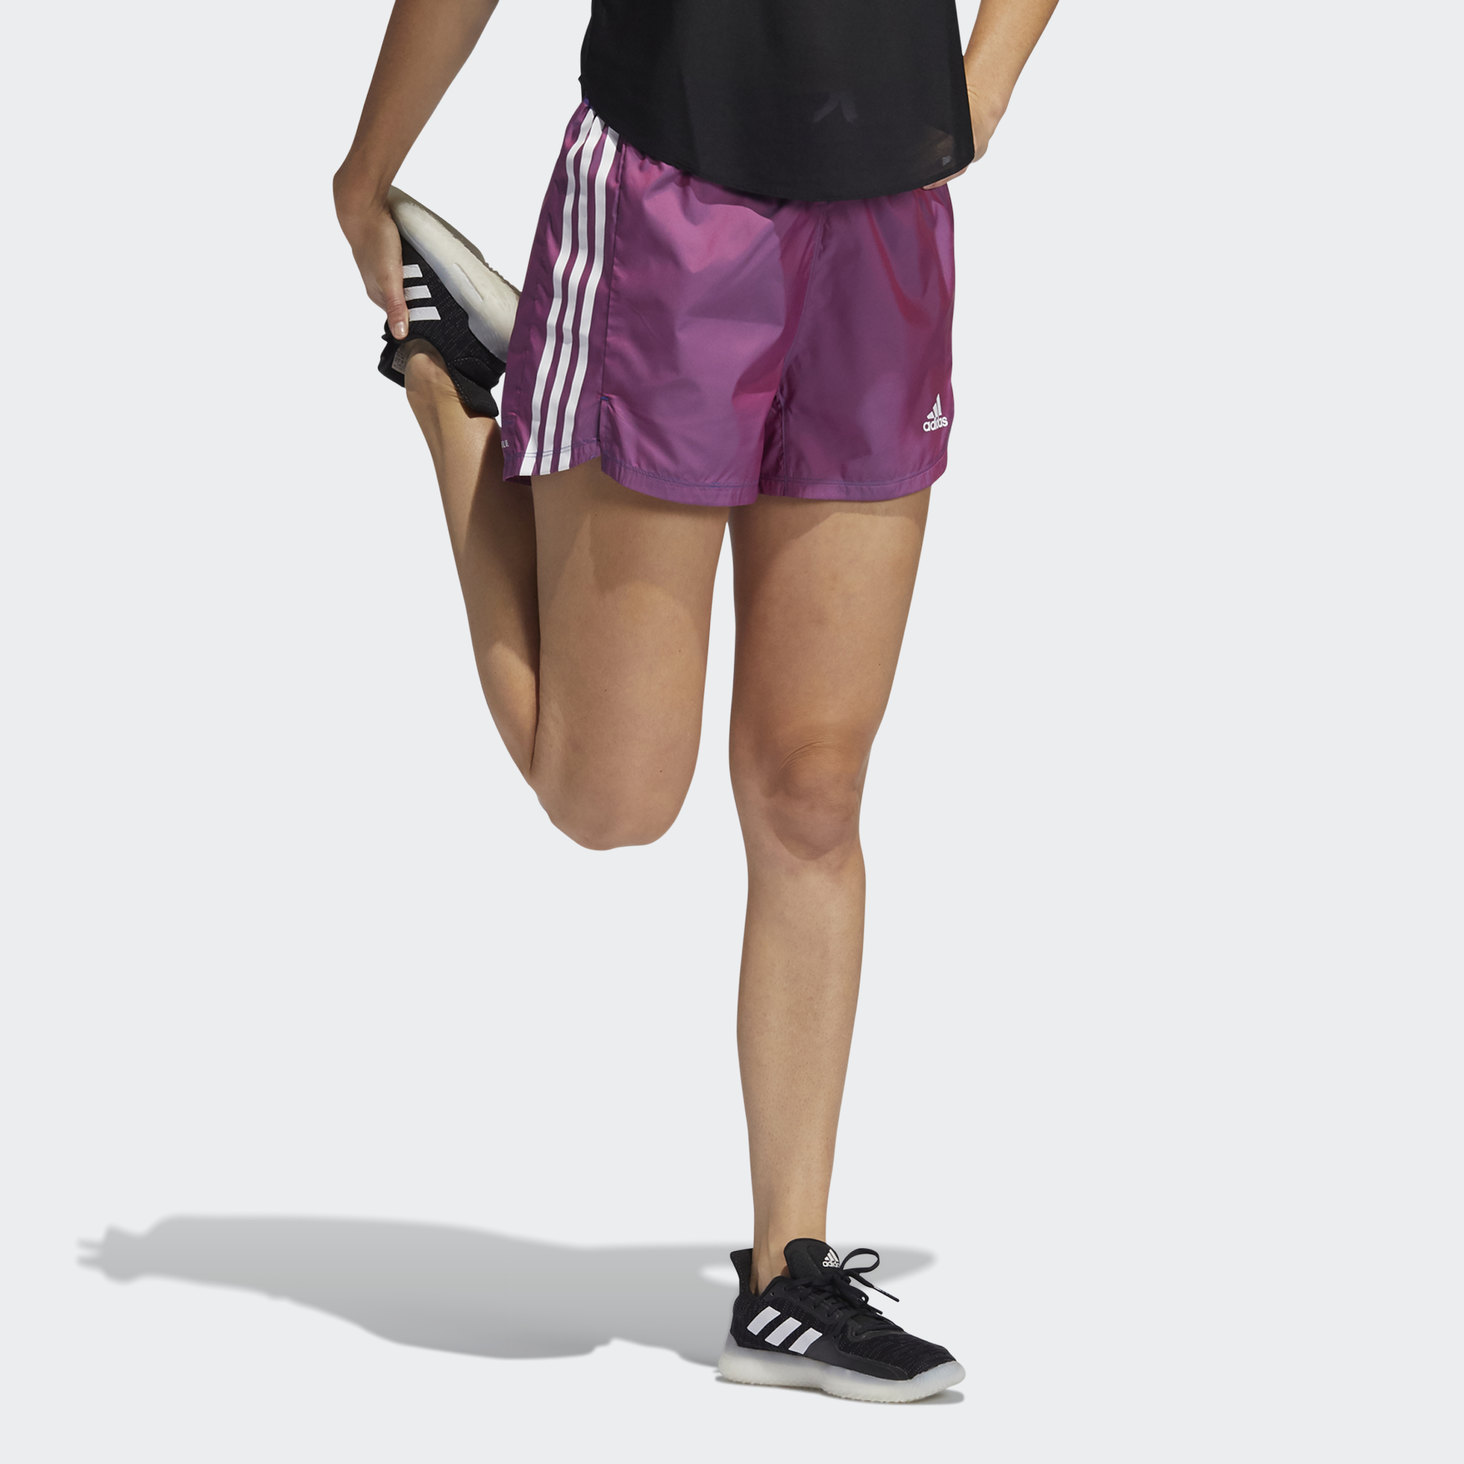 ELEVATED WOVEN PRIMEBLUE PACER SHORTS